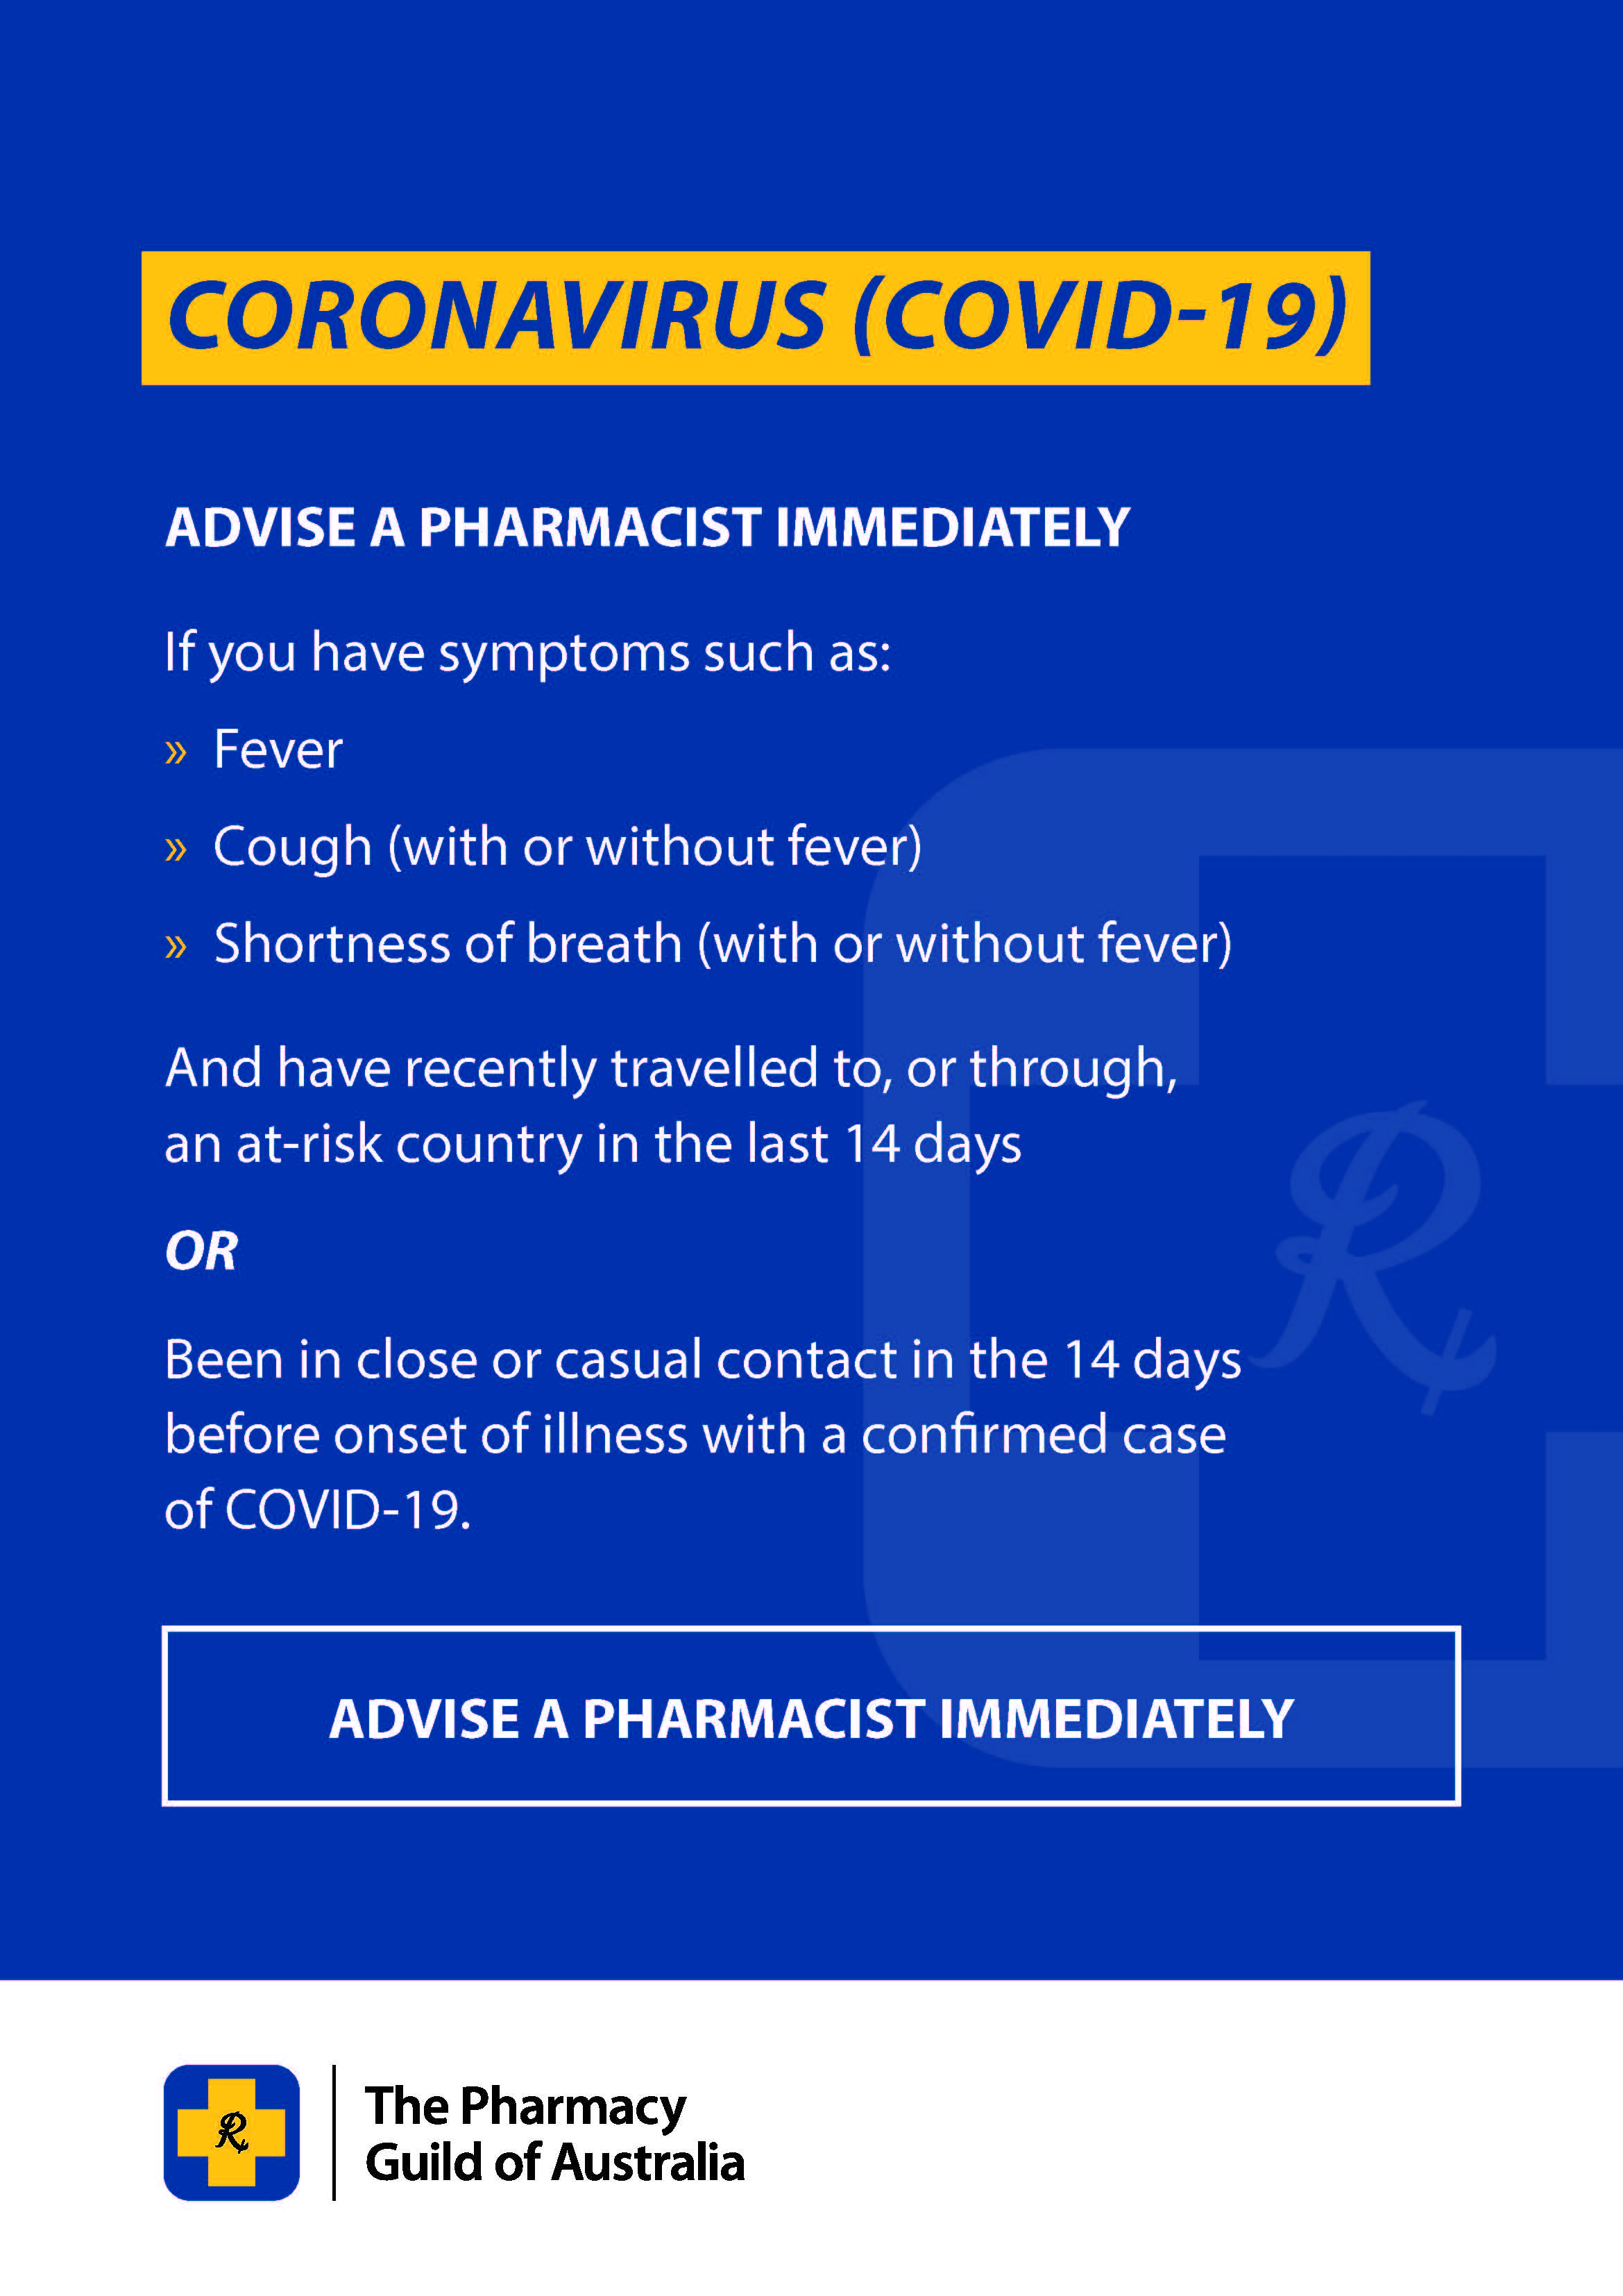 COVID-19 Poster 2 -  Advise Pharmacist